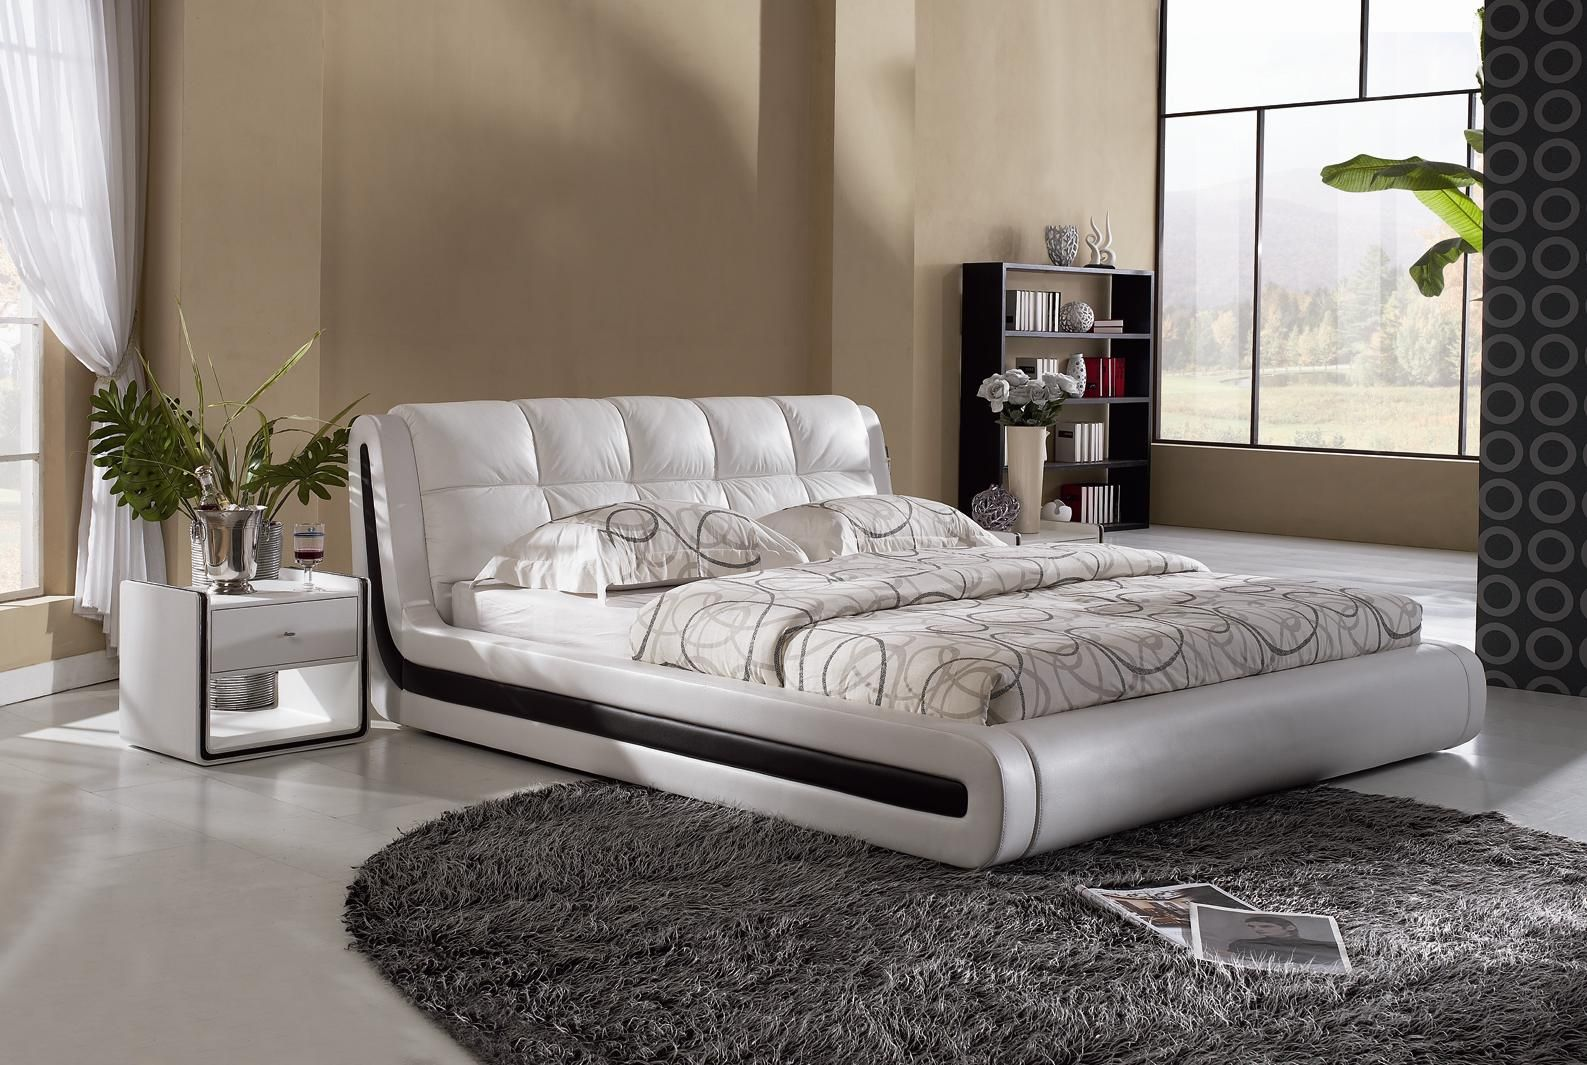 Modern bed designs home interior designer adult bedroom for Best bed design images